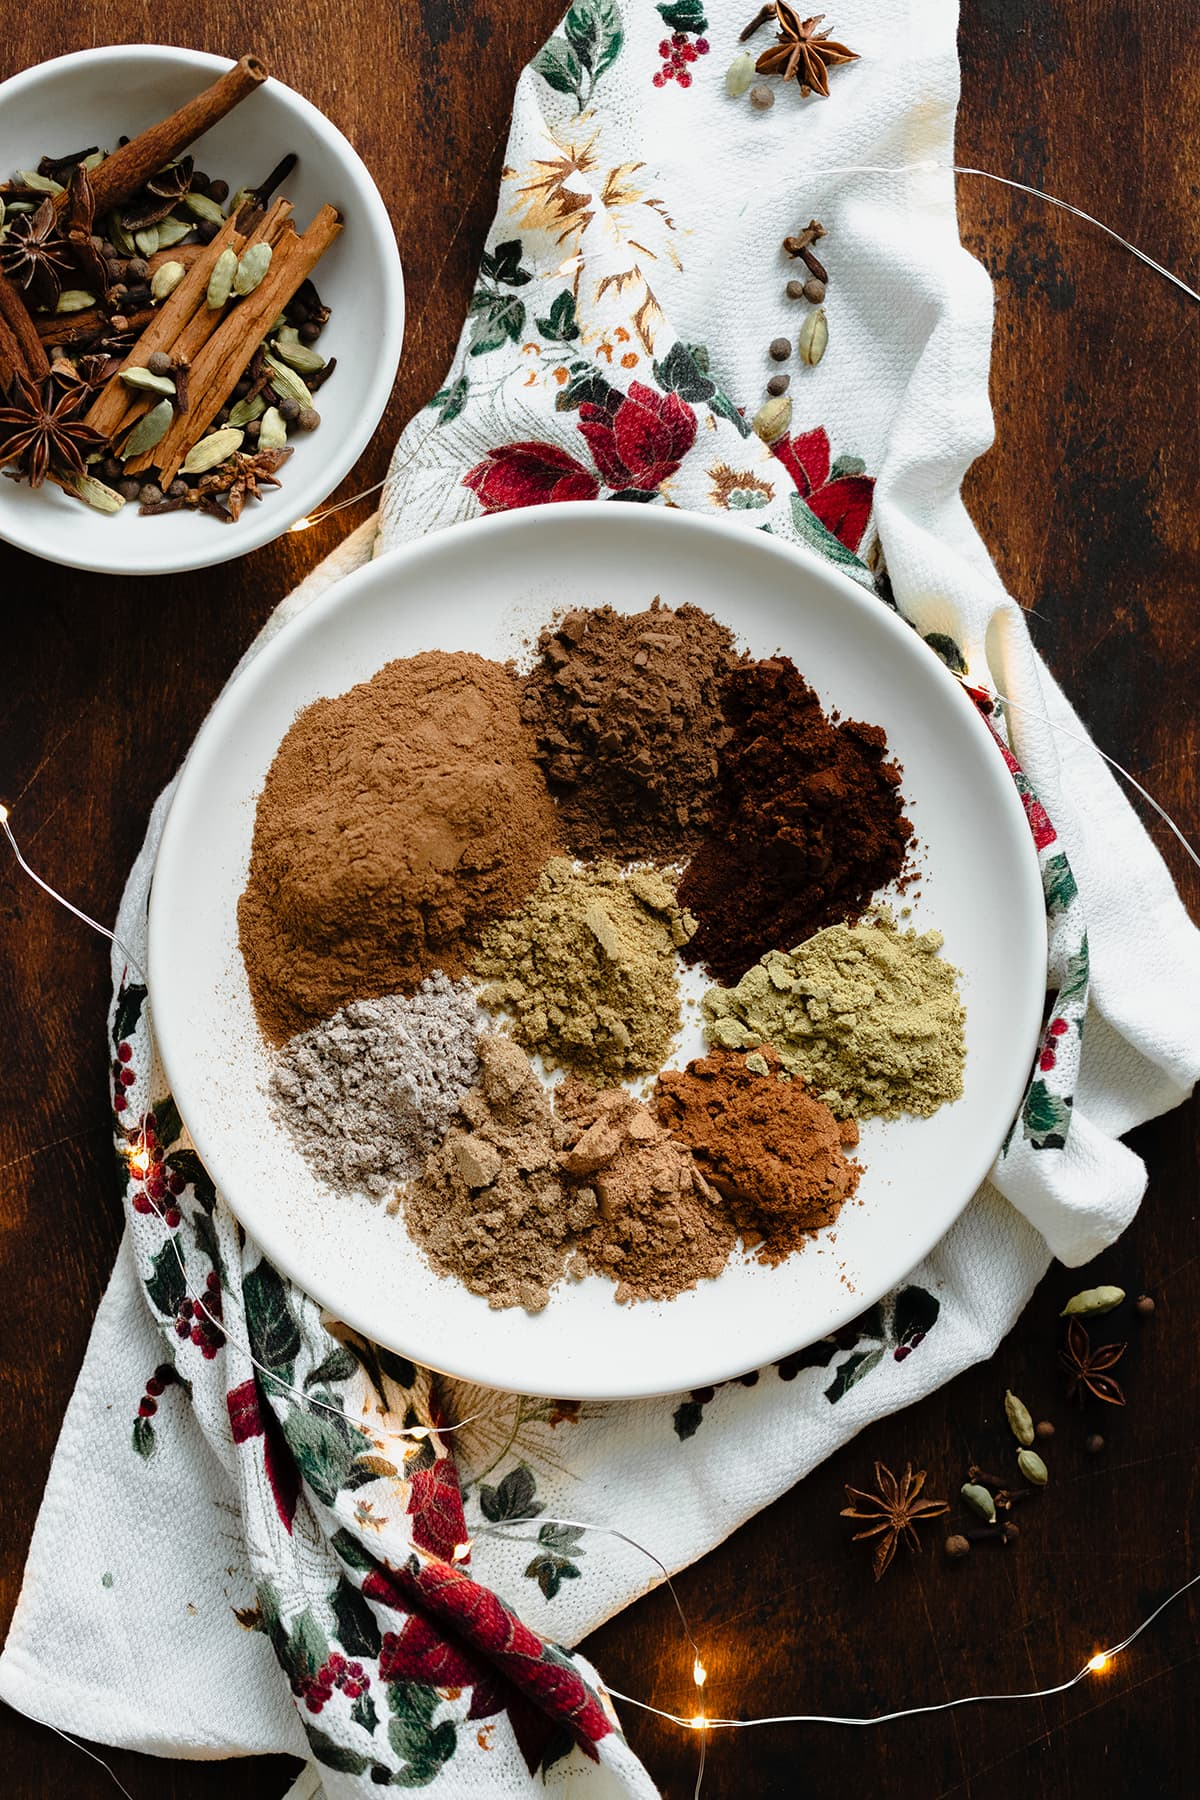 A photo of all the spices used in the Christmas Spice Blend on a white plate. On a dark wooden background.